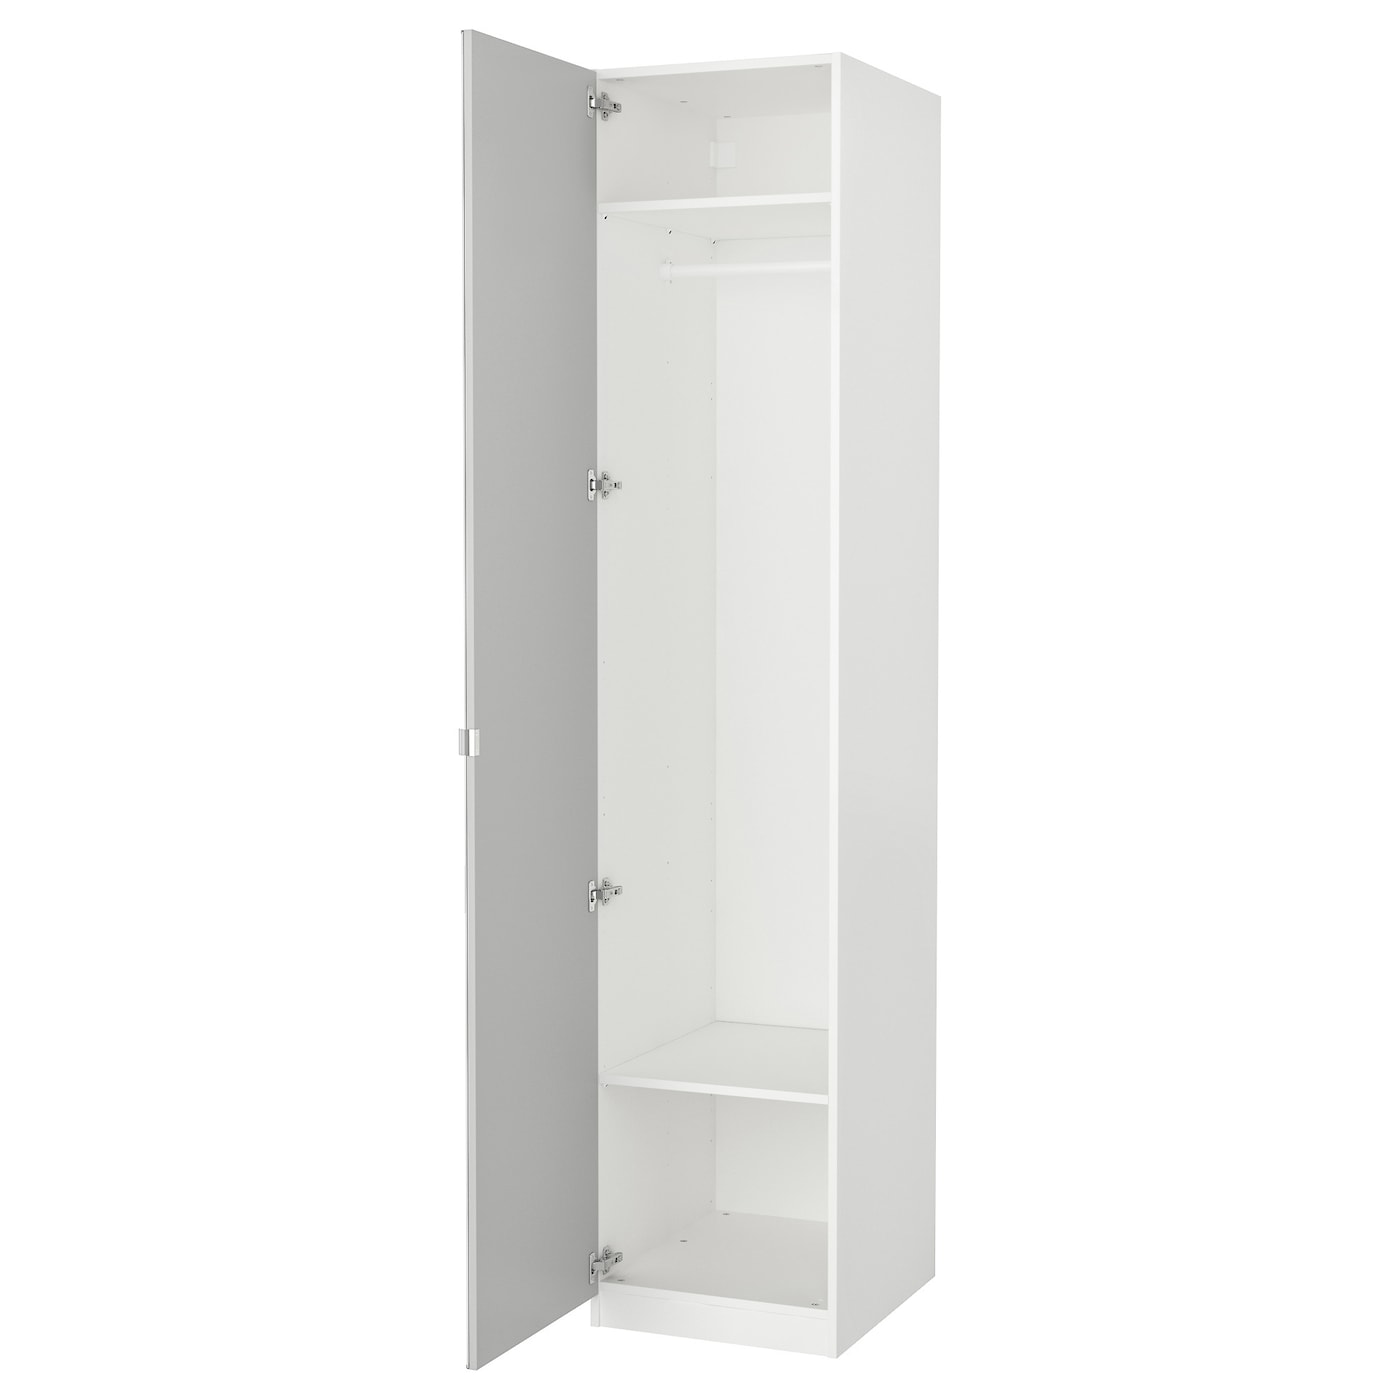 Pax wardrobe white vikedal mirror glass 50x60x236 cm ikea for Miroir 50x80